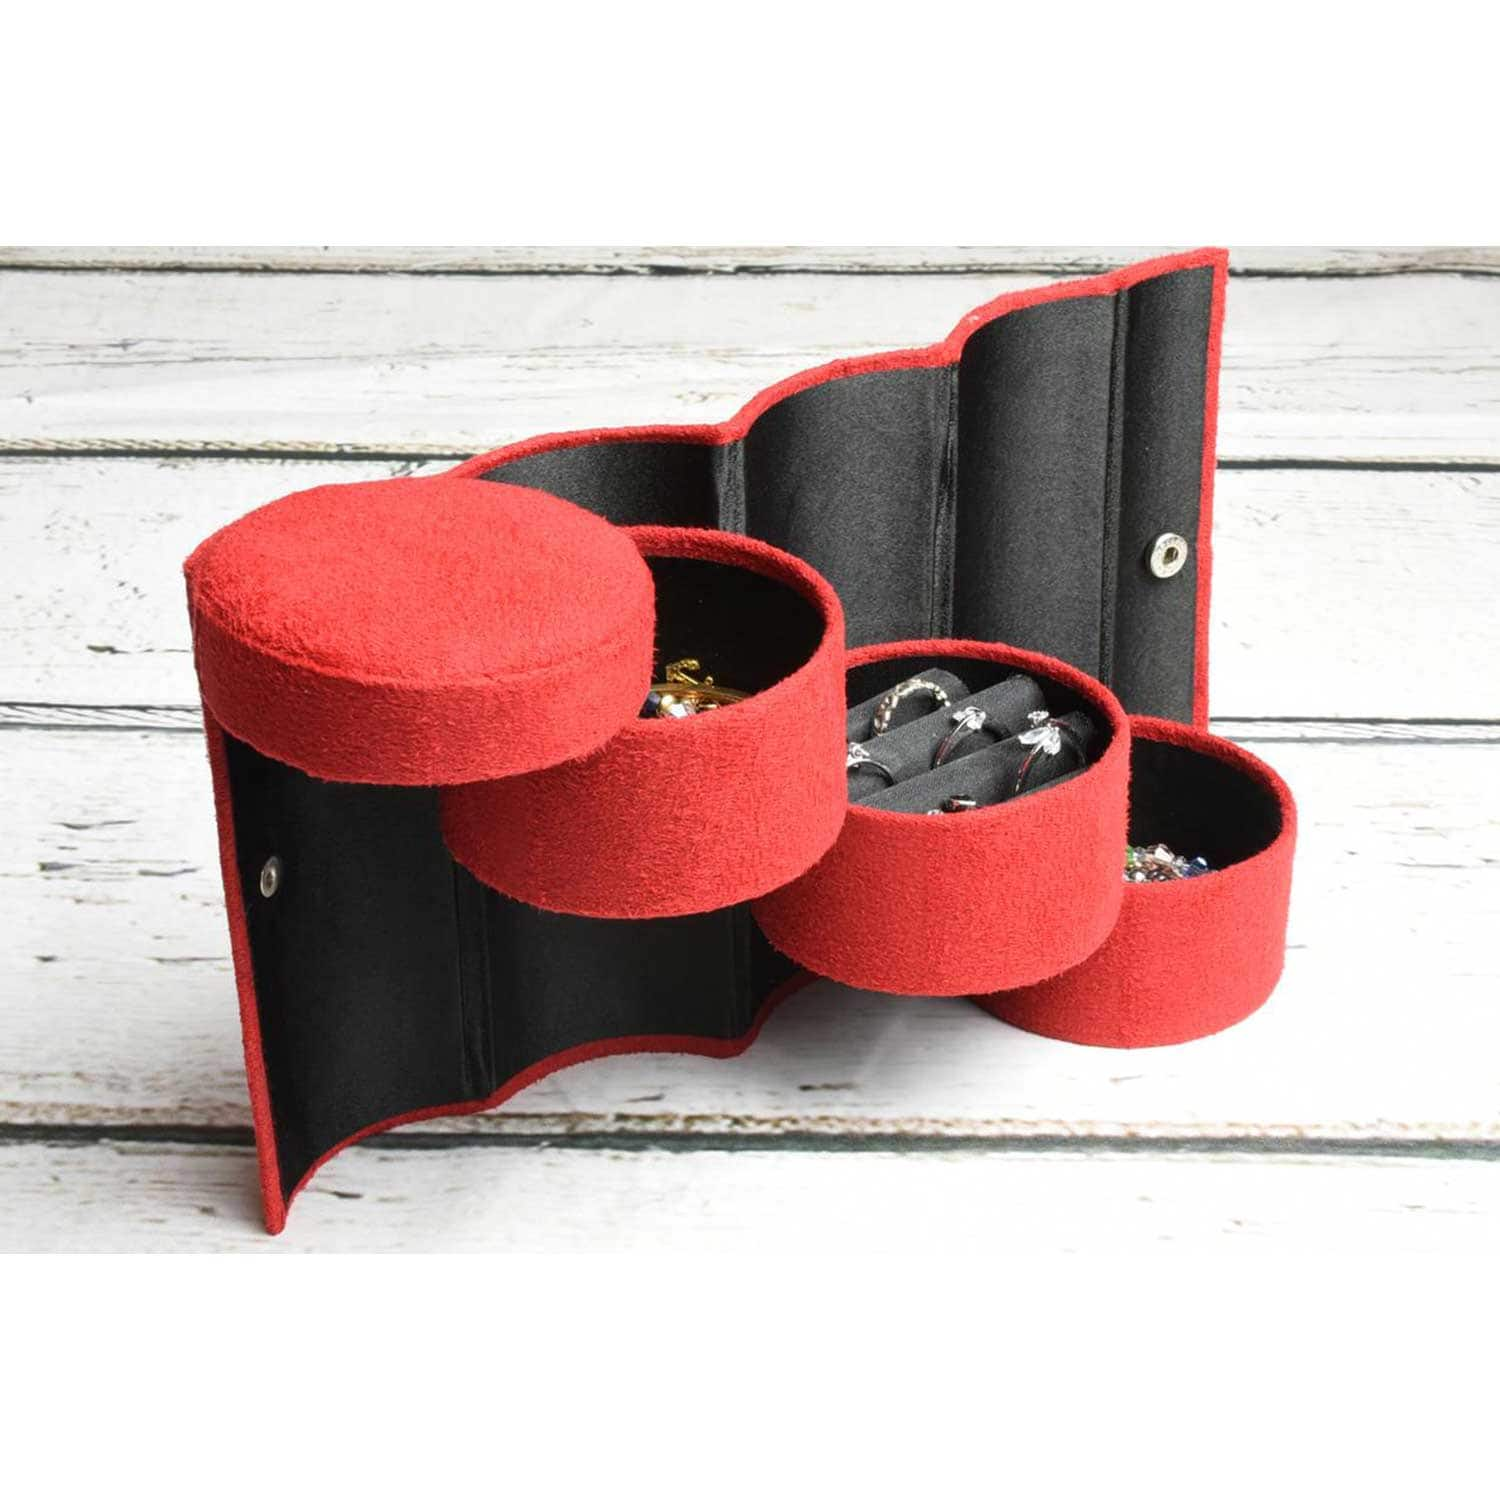 Portable Flannel Jewelry Organizer - $5.94 + Free Shipping